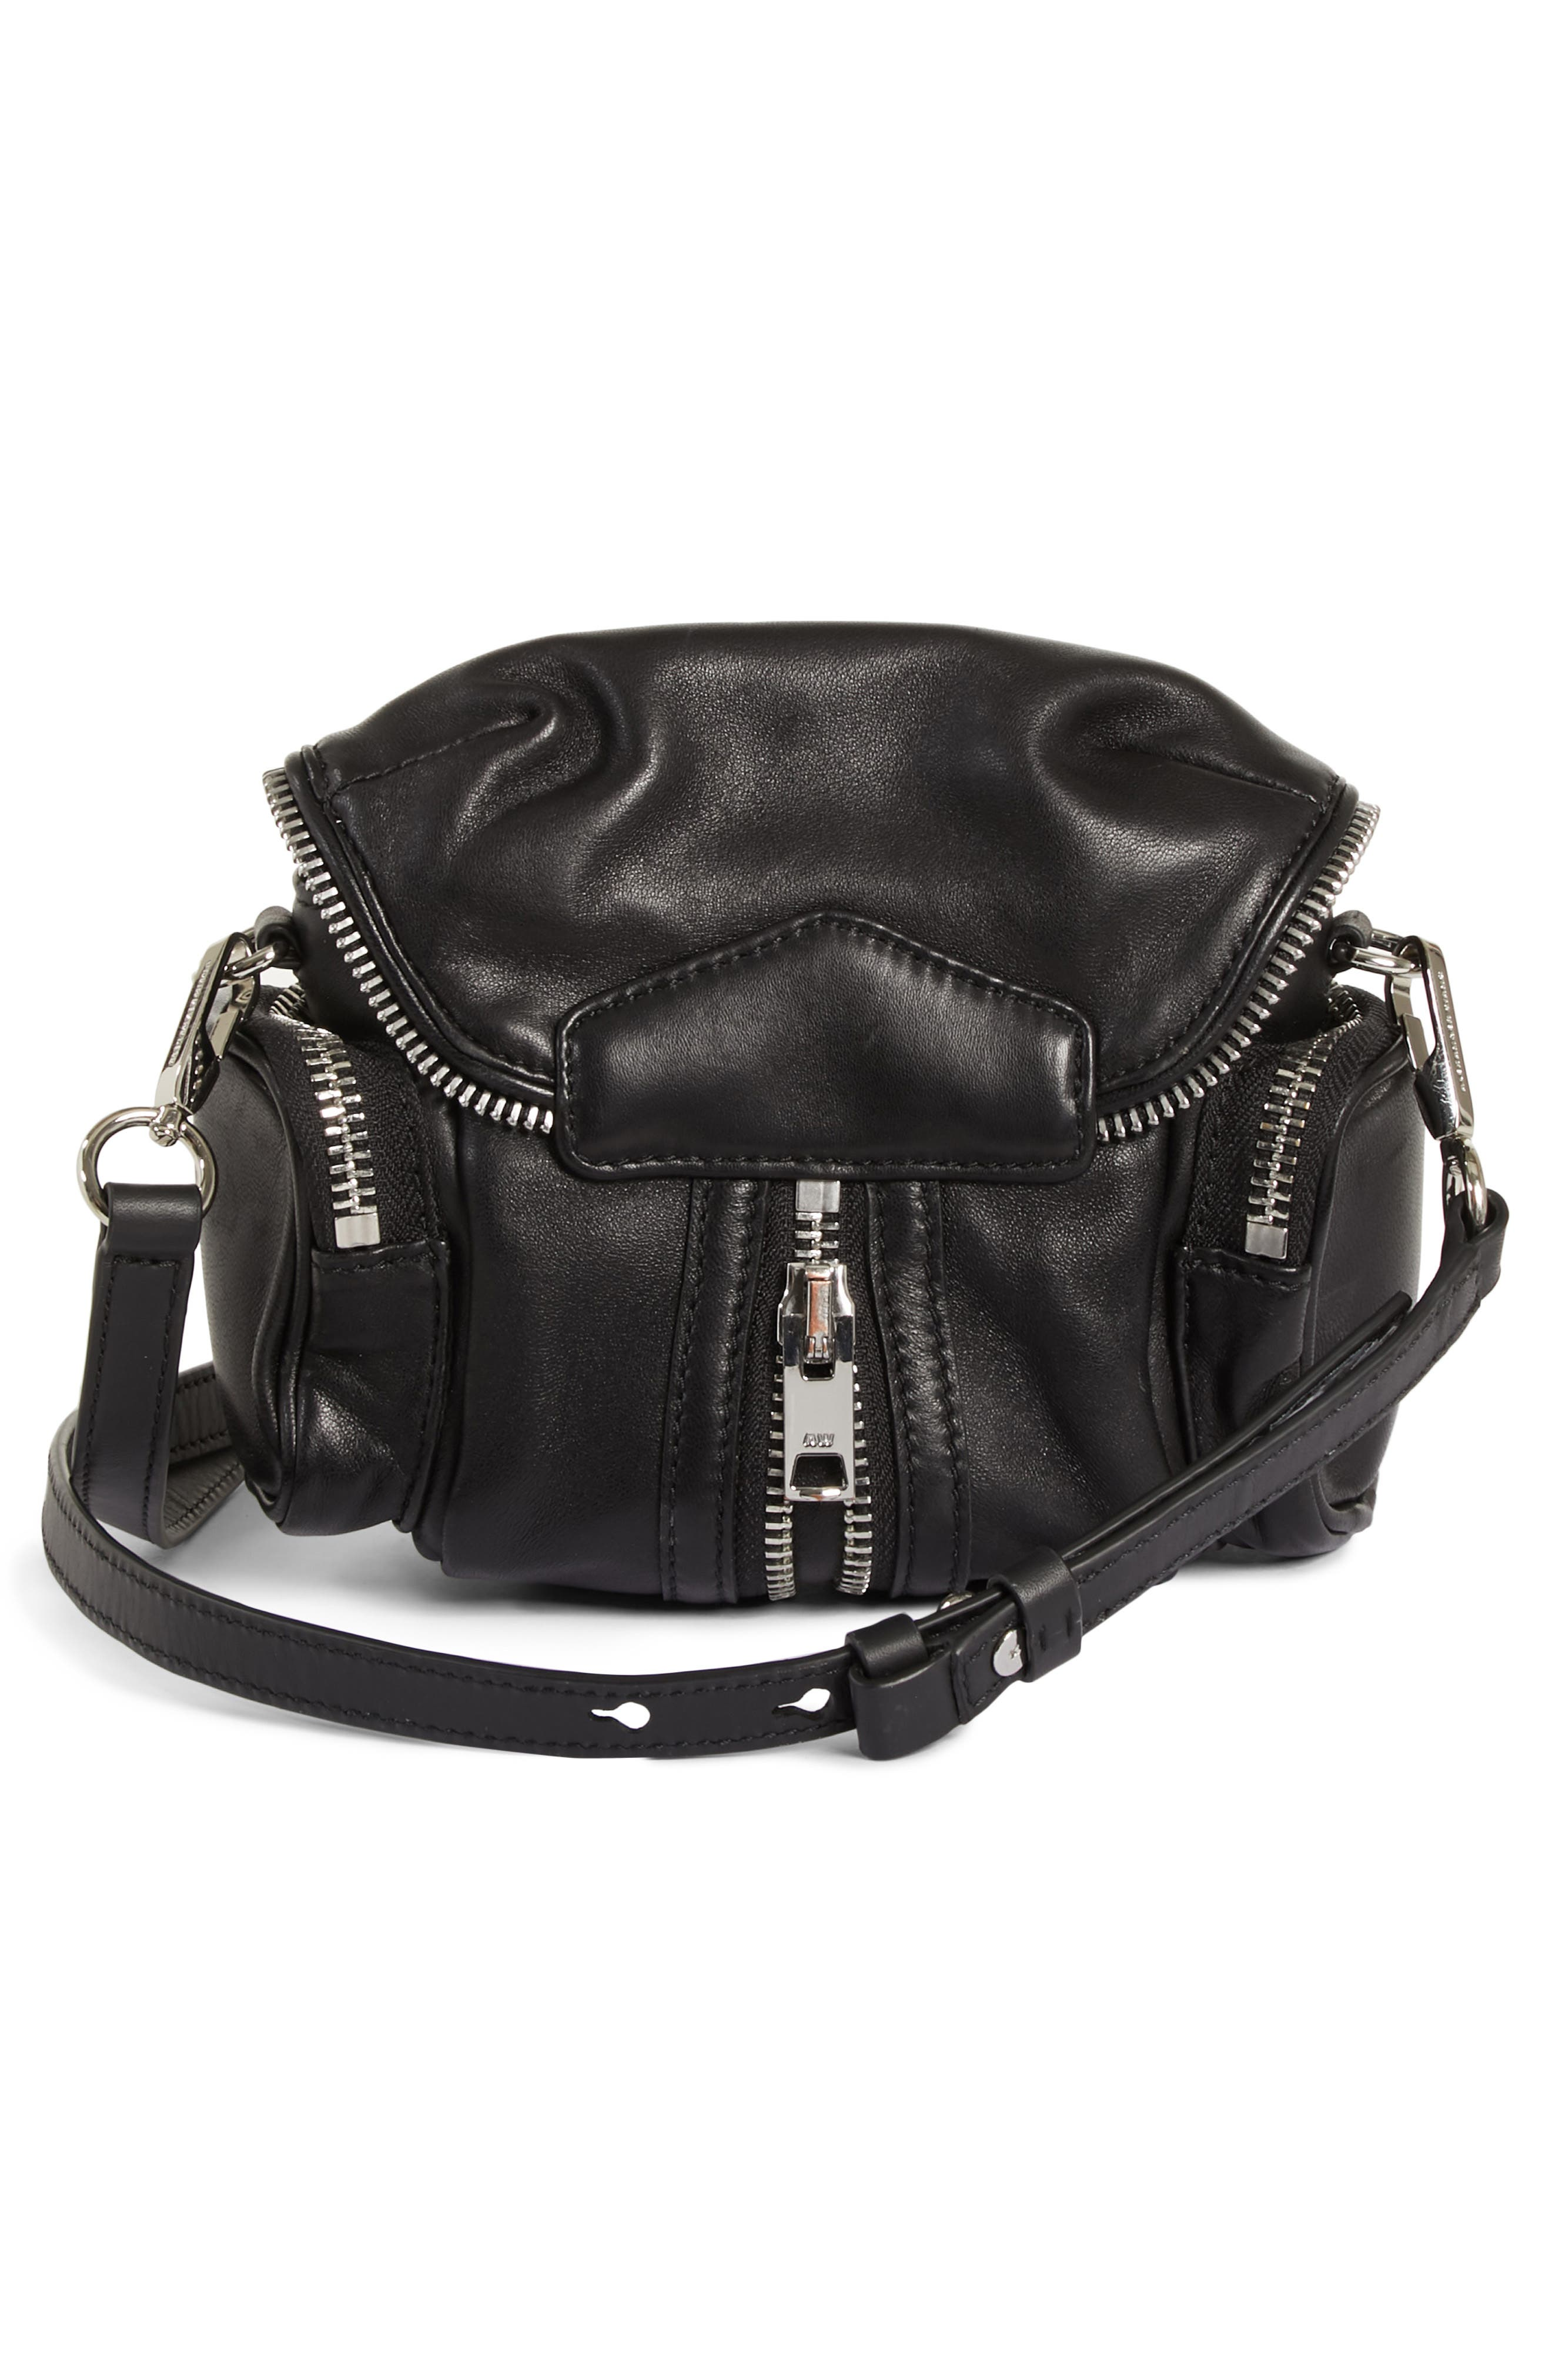 ALEXANDER WANG, Mini Marti Leather Crossbody Bag, Alternate thumbnail 3, color, BLACK